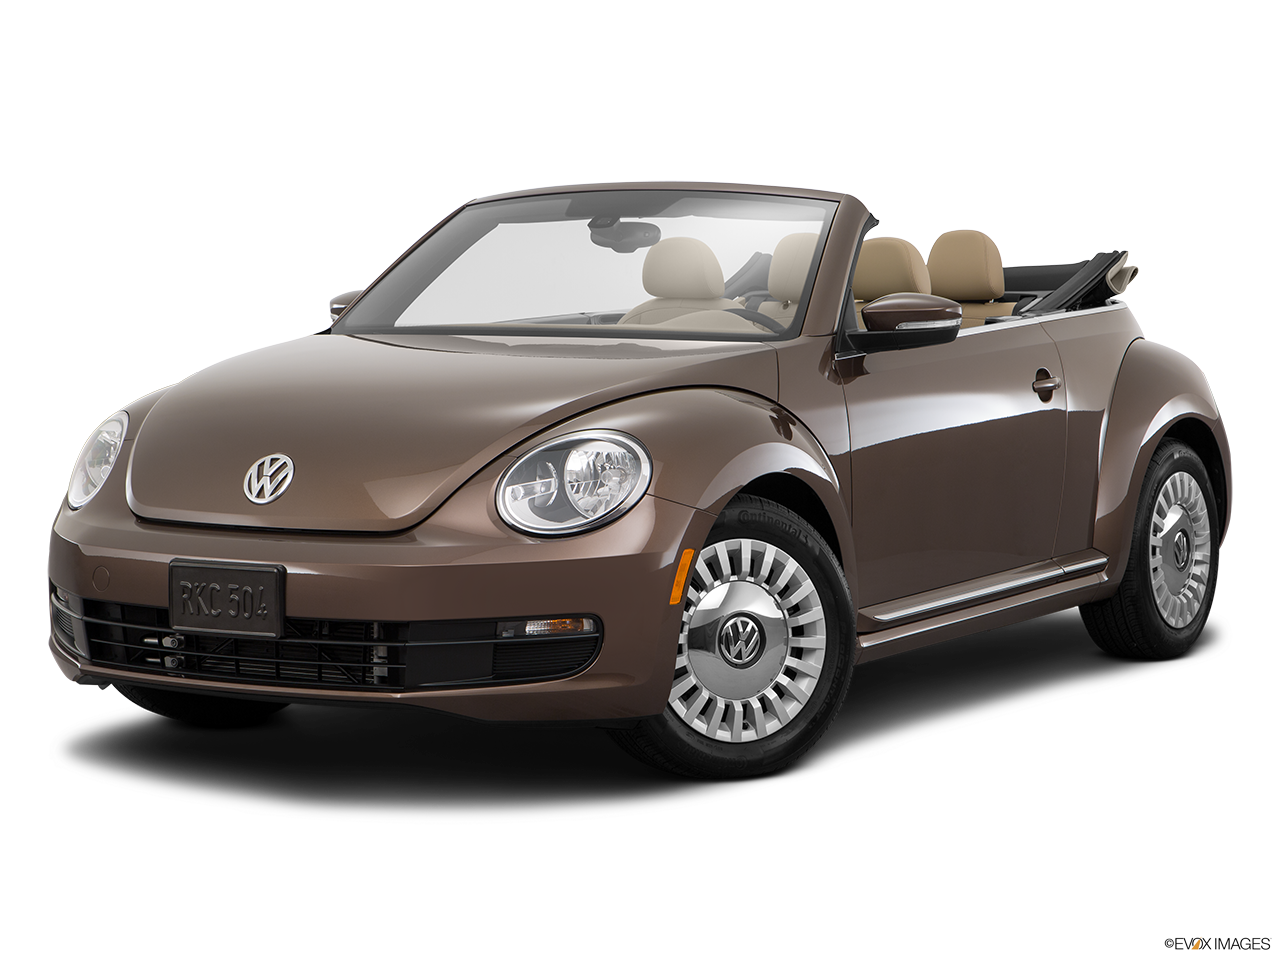 Test Drive A 2016 Volkswagen Beetleat New Century Volkswagen in Los Angeles